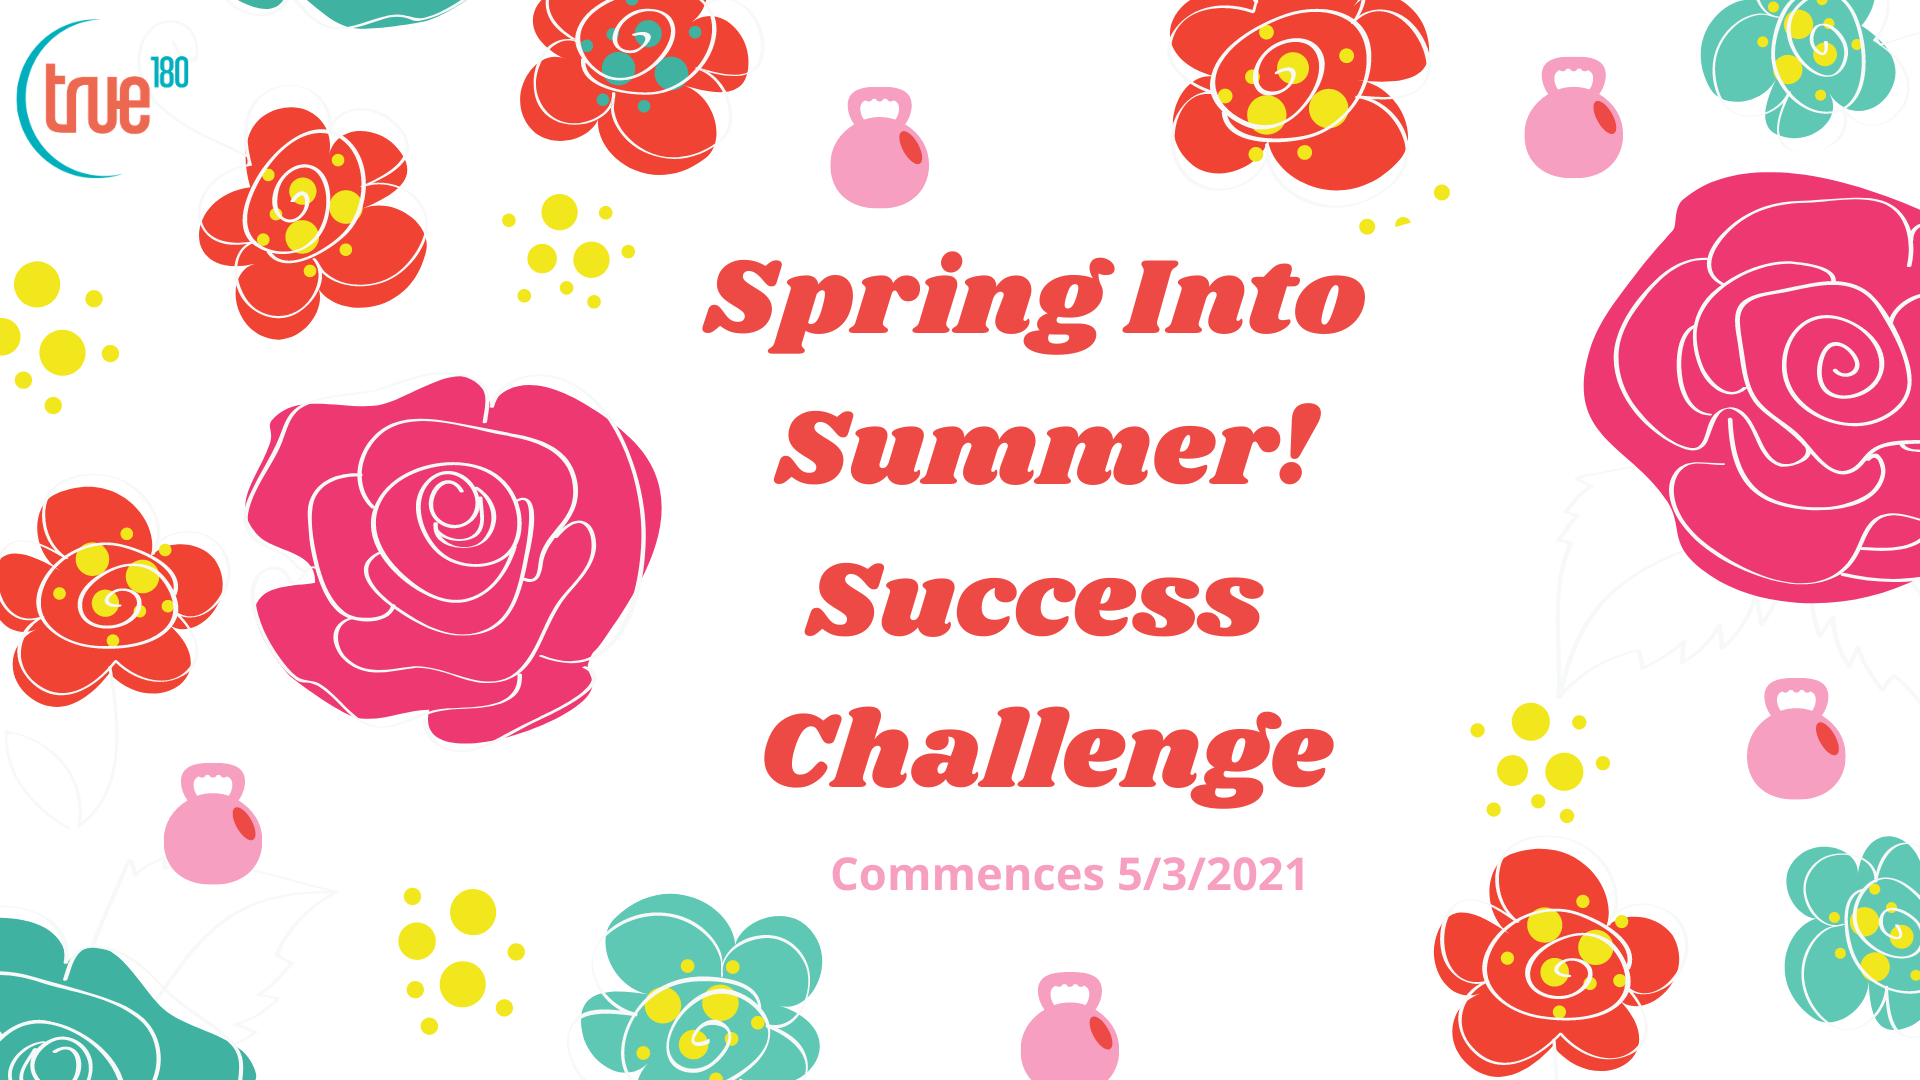 Spring Into Summer Challenge Announced